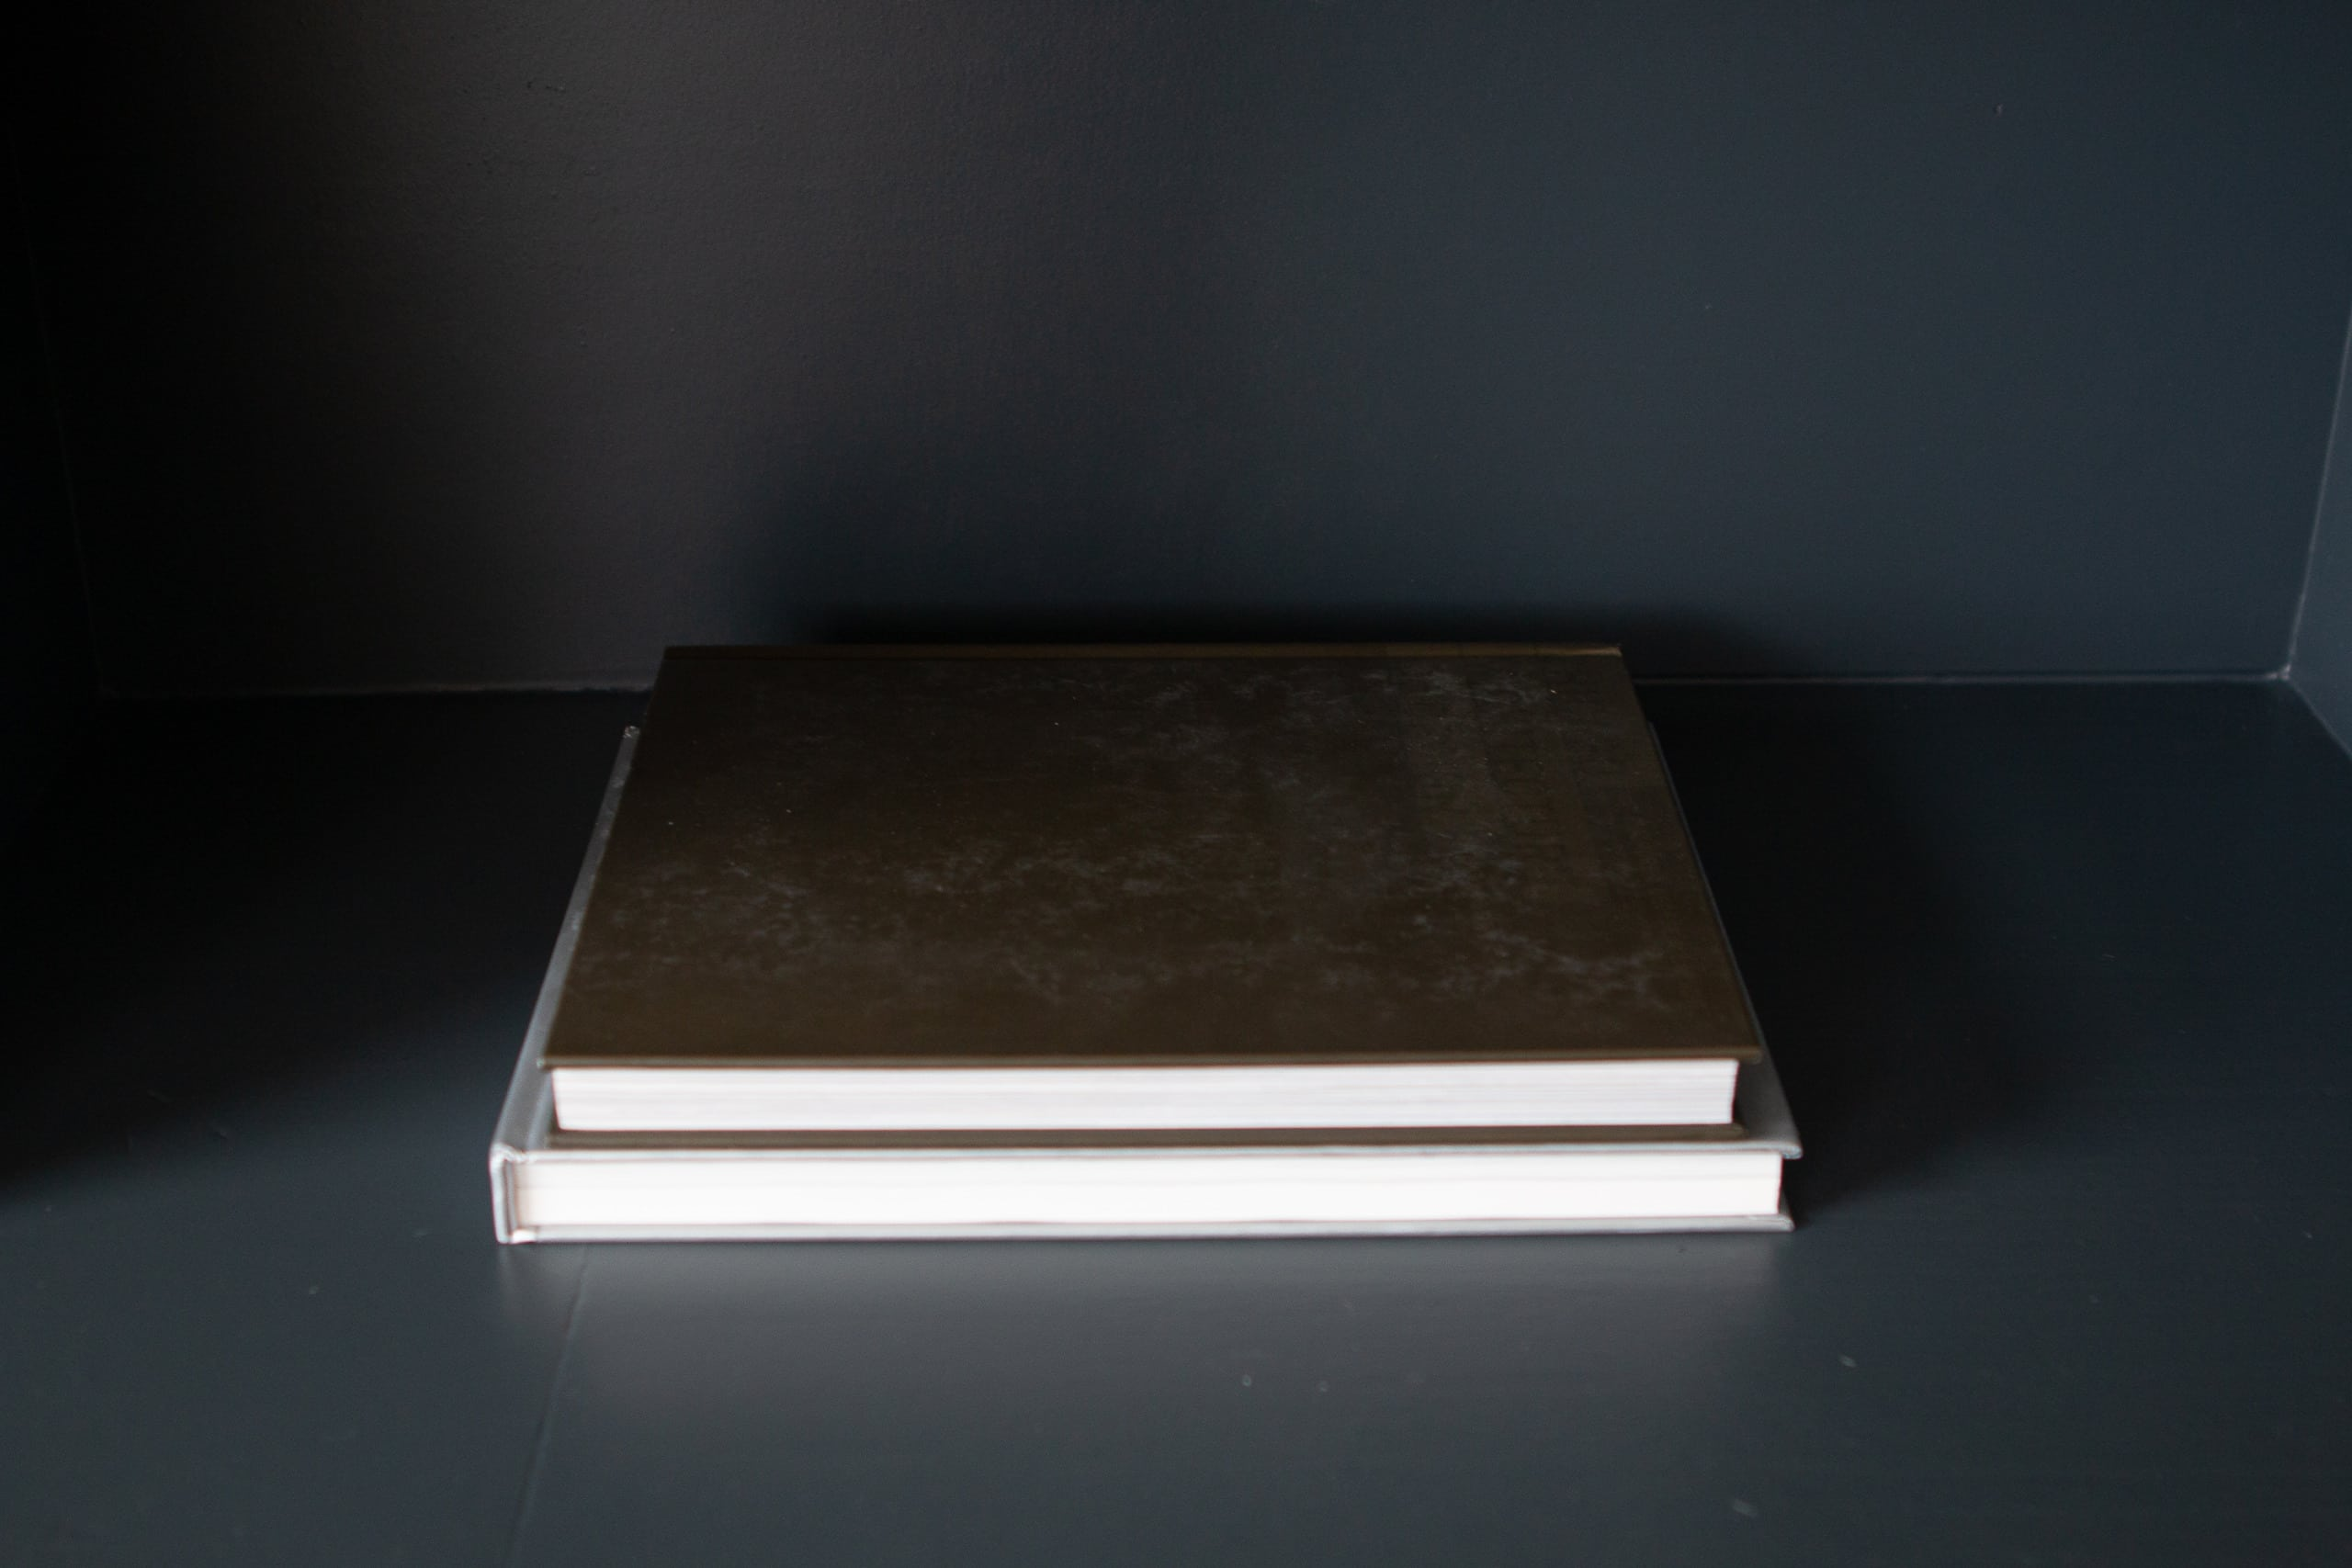 Use coffee table books to ground surfaces